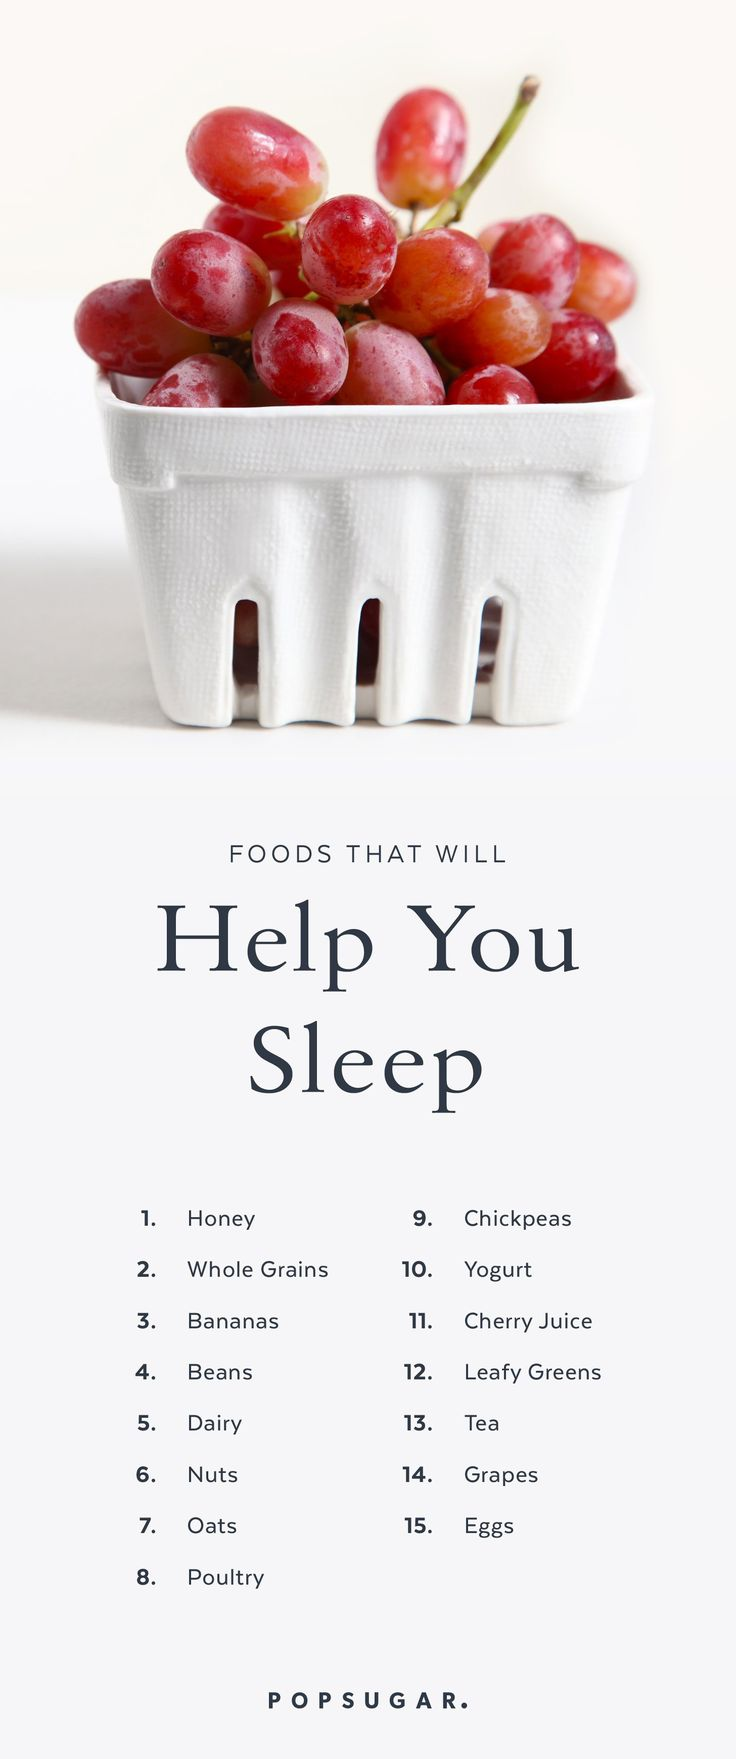 15 Foods to Help You Sleep